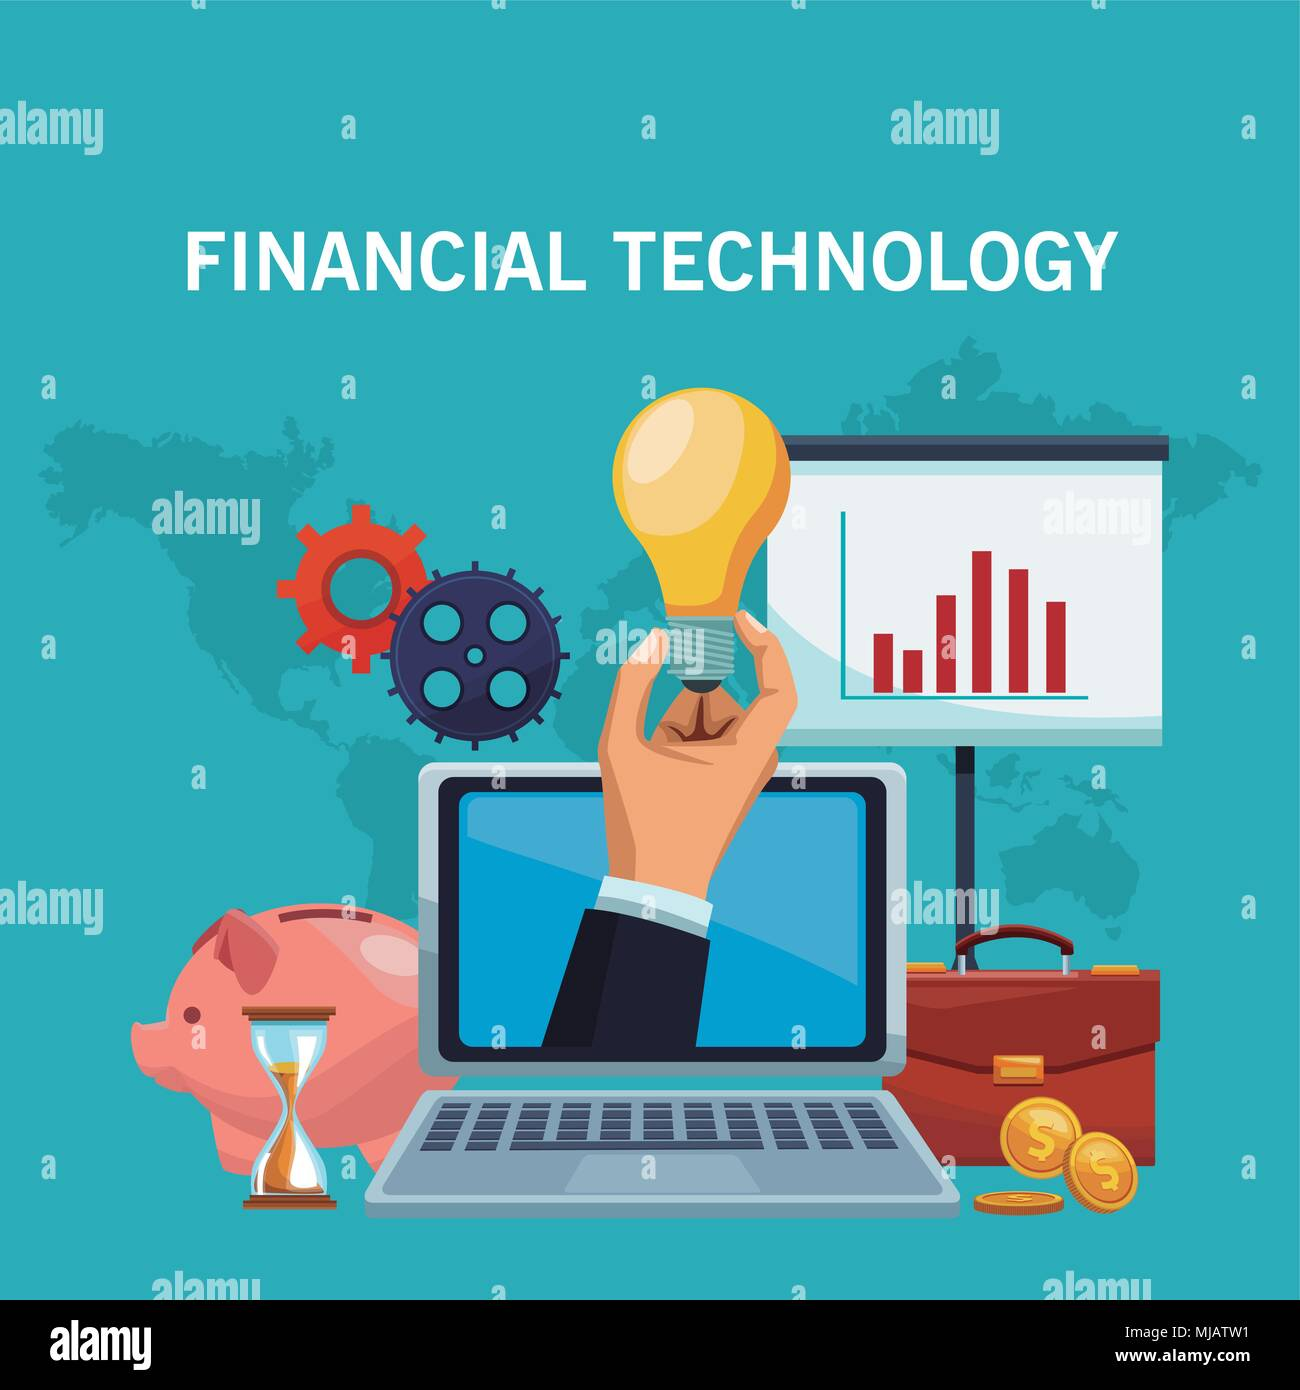 Financial technology concept - Stock Image